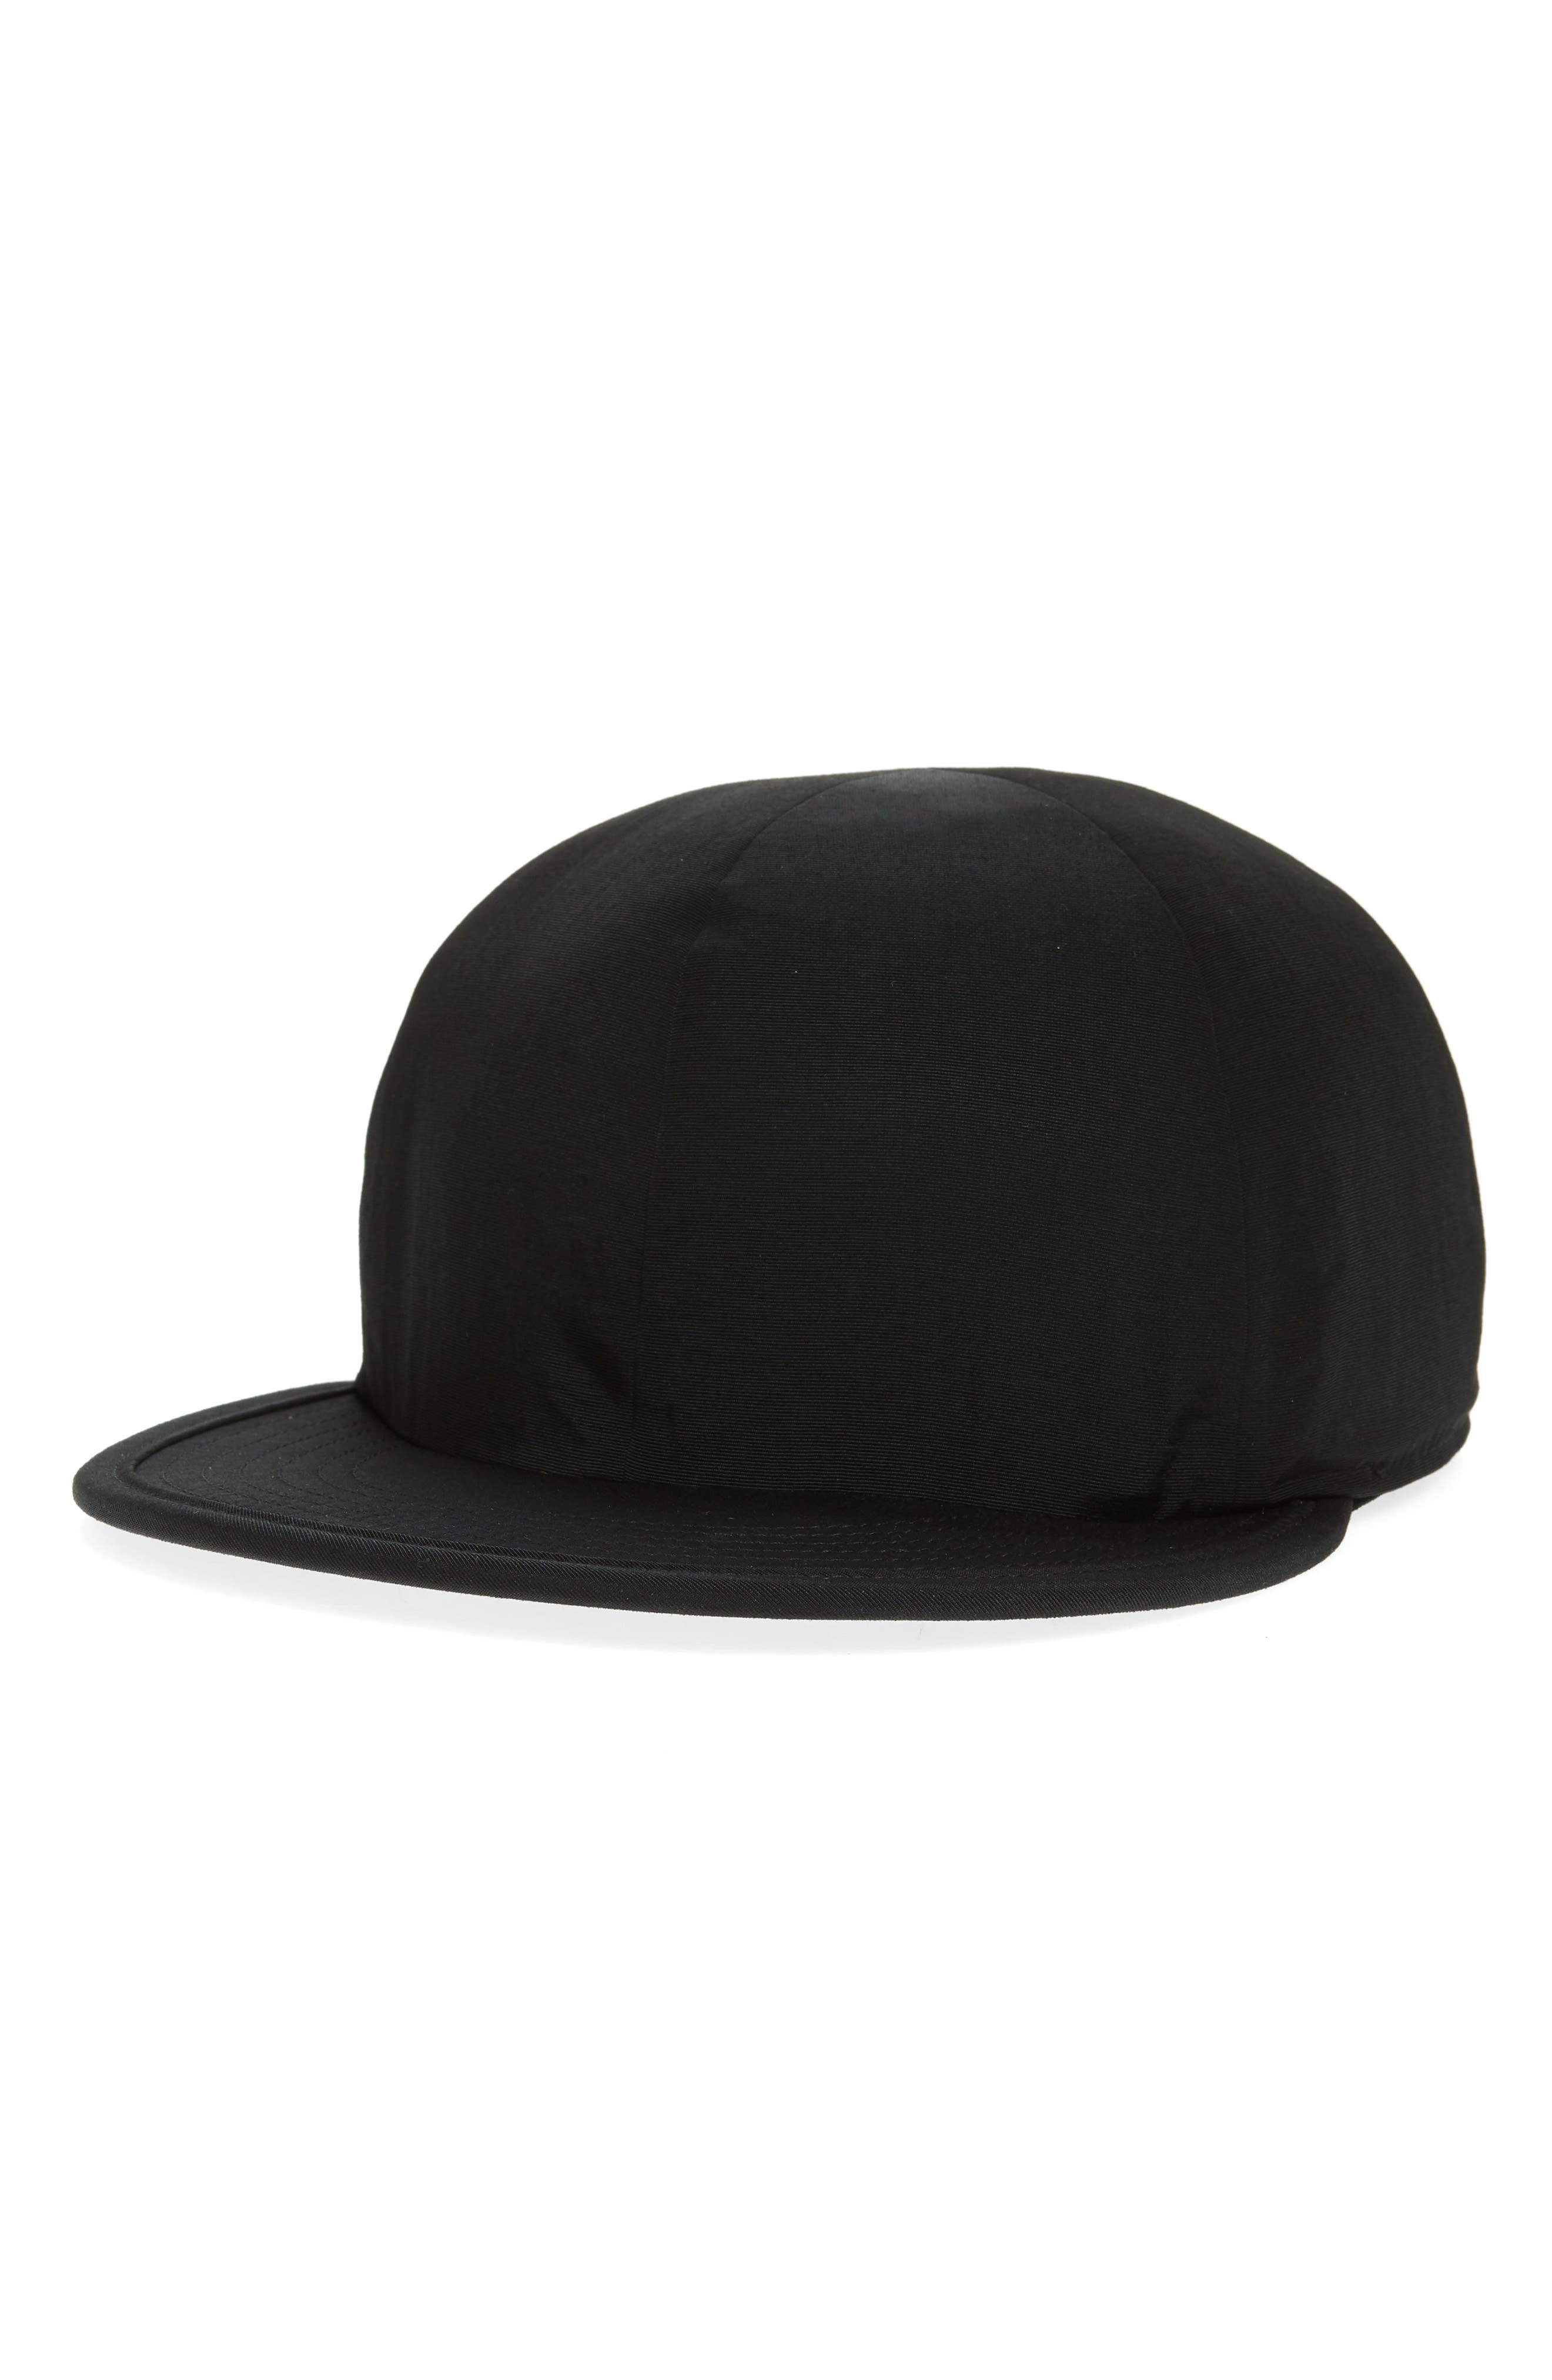 Canyon Baseball Cap,                             Main thumbnail 1, color,                             BLACK